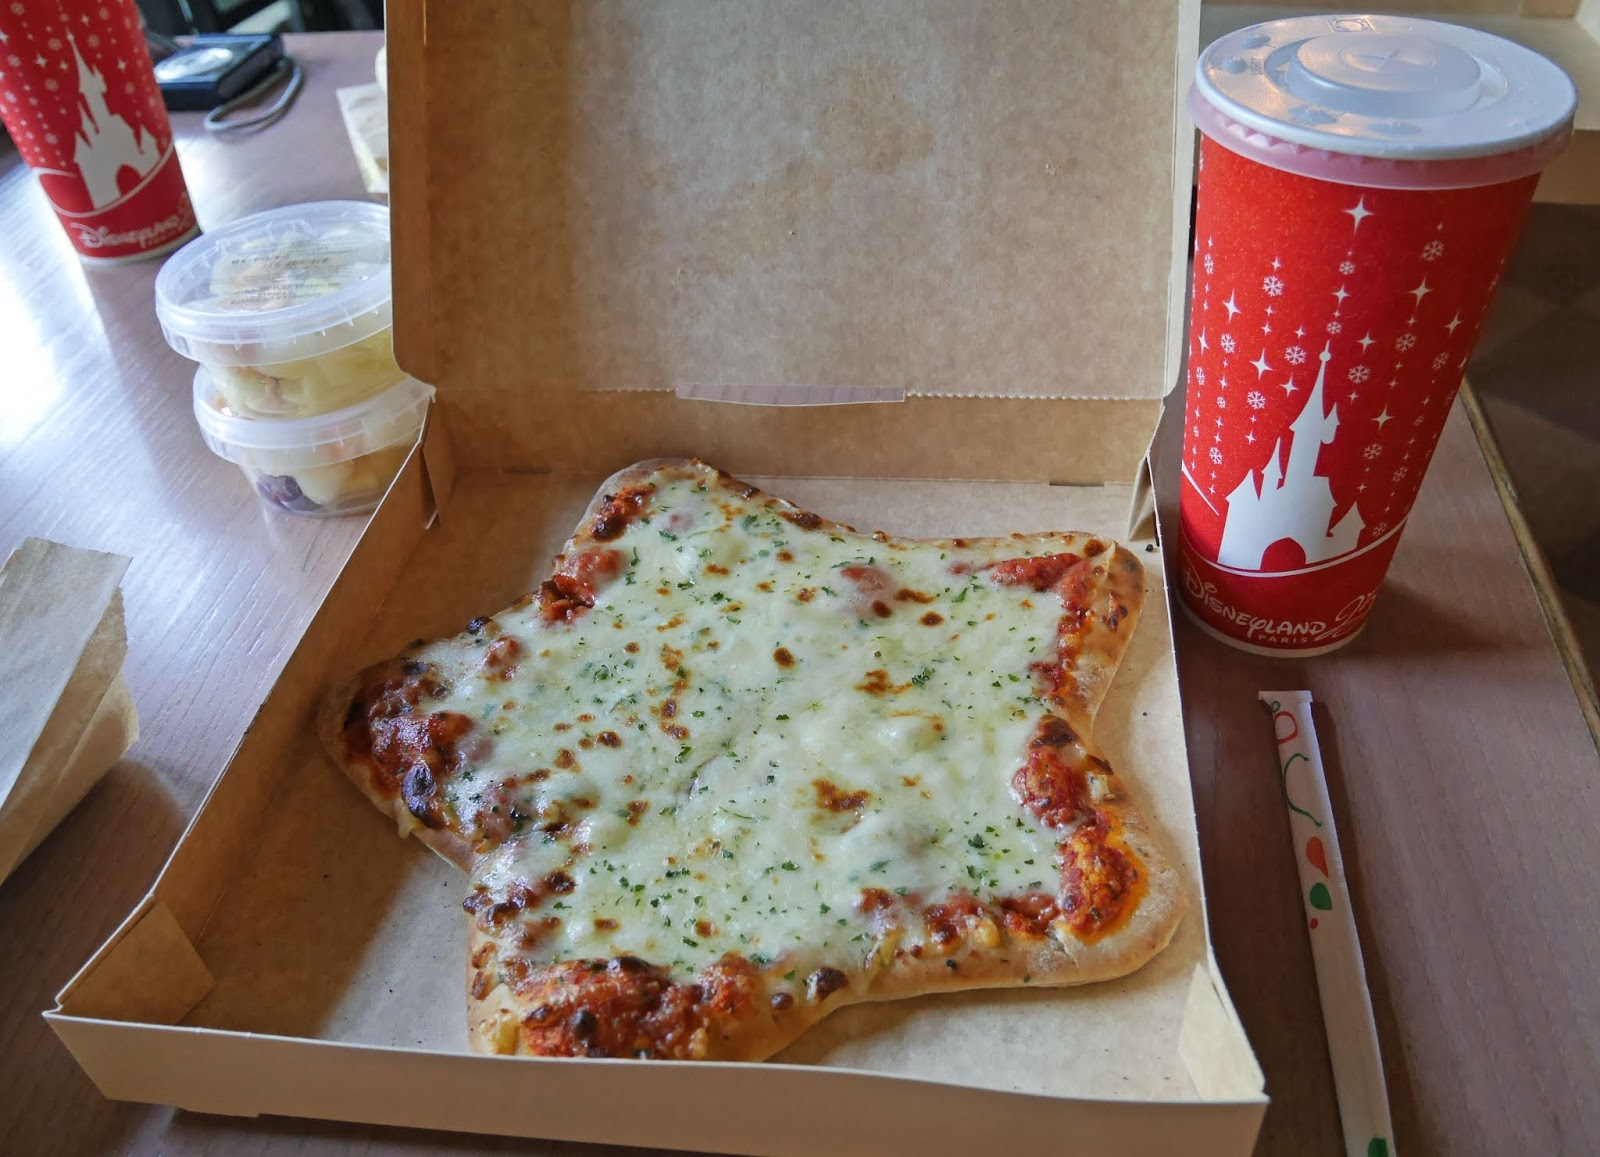 Star-shaped pizza at Disneyland Paris